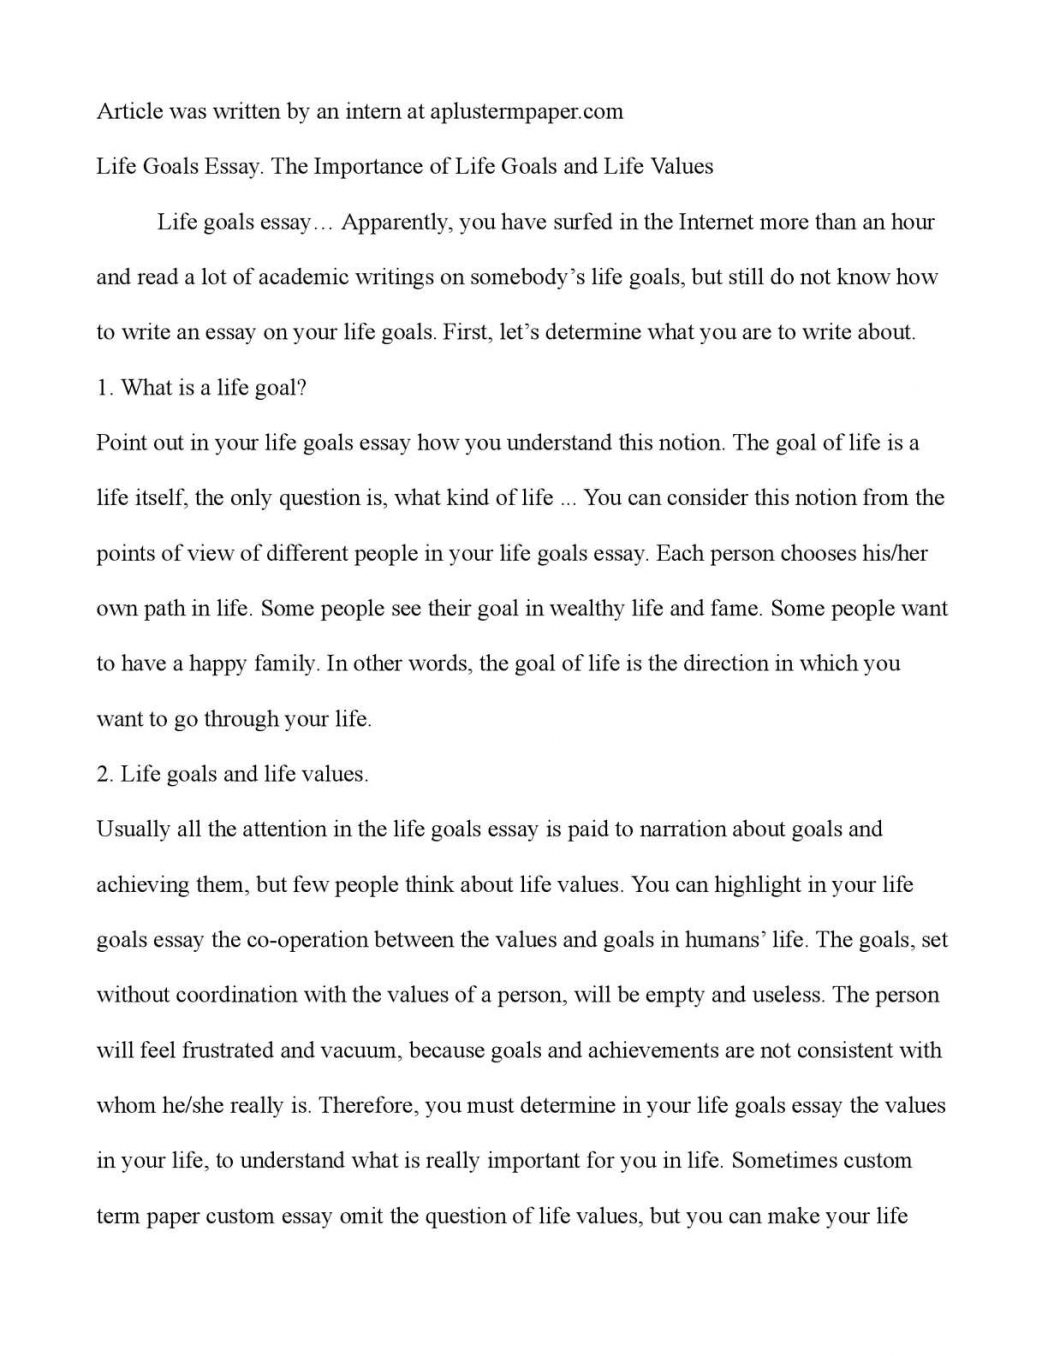 014 Essay Example Life Goals Narrative On Achieving Goal My Purpose In Exampl Examples Ambition 1048x1356 Wondrous Of Conclusion How To Have A Driven Can I Full